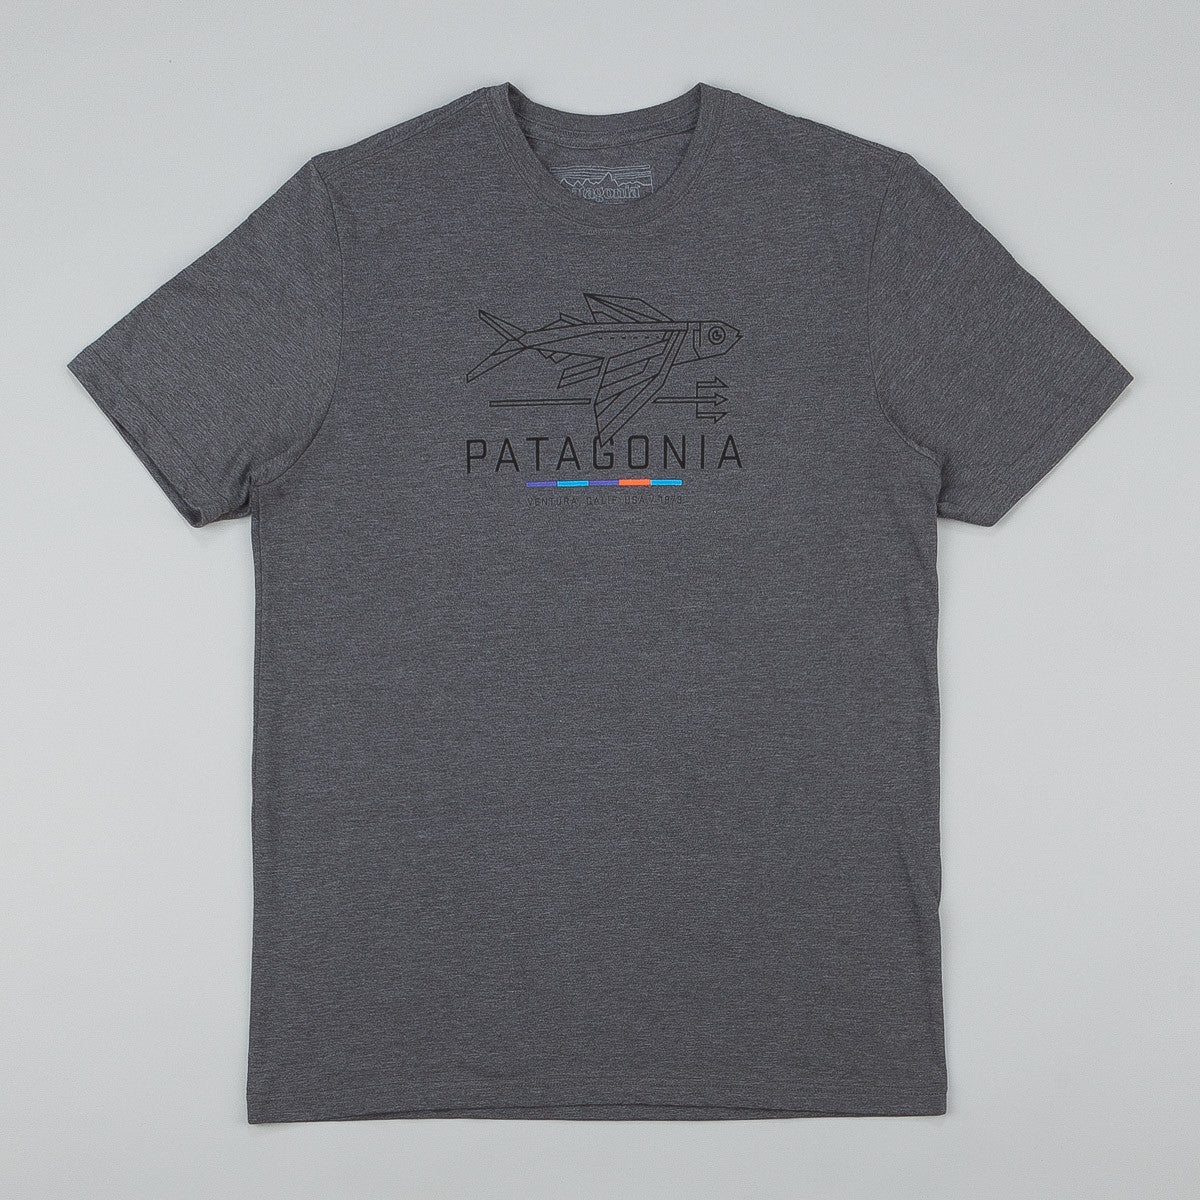 Patagonia Geodisc Flying Fish T-Shirt